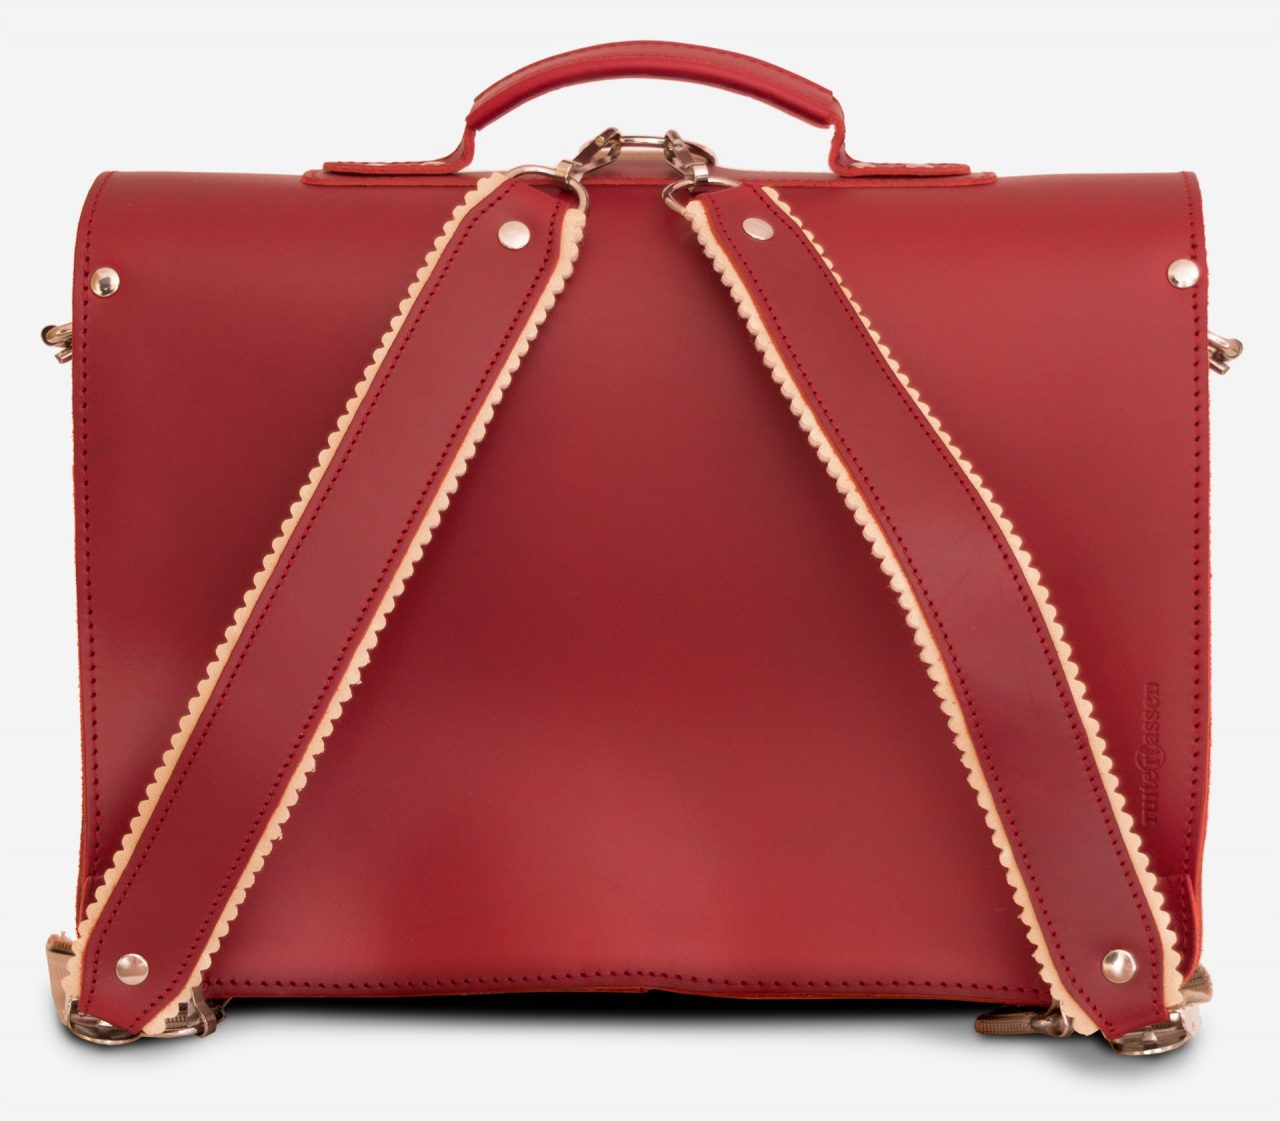 Back view of red leather satchel backpack with 2 gussets and symmetric front pockets for women - 152233.